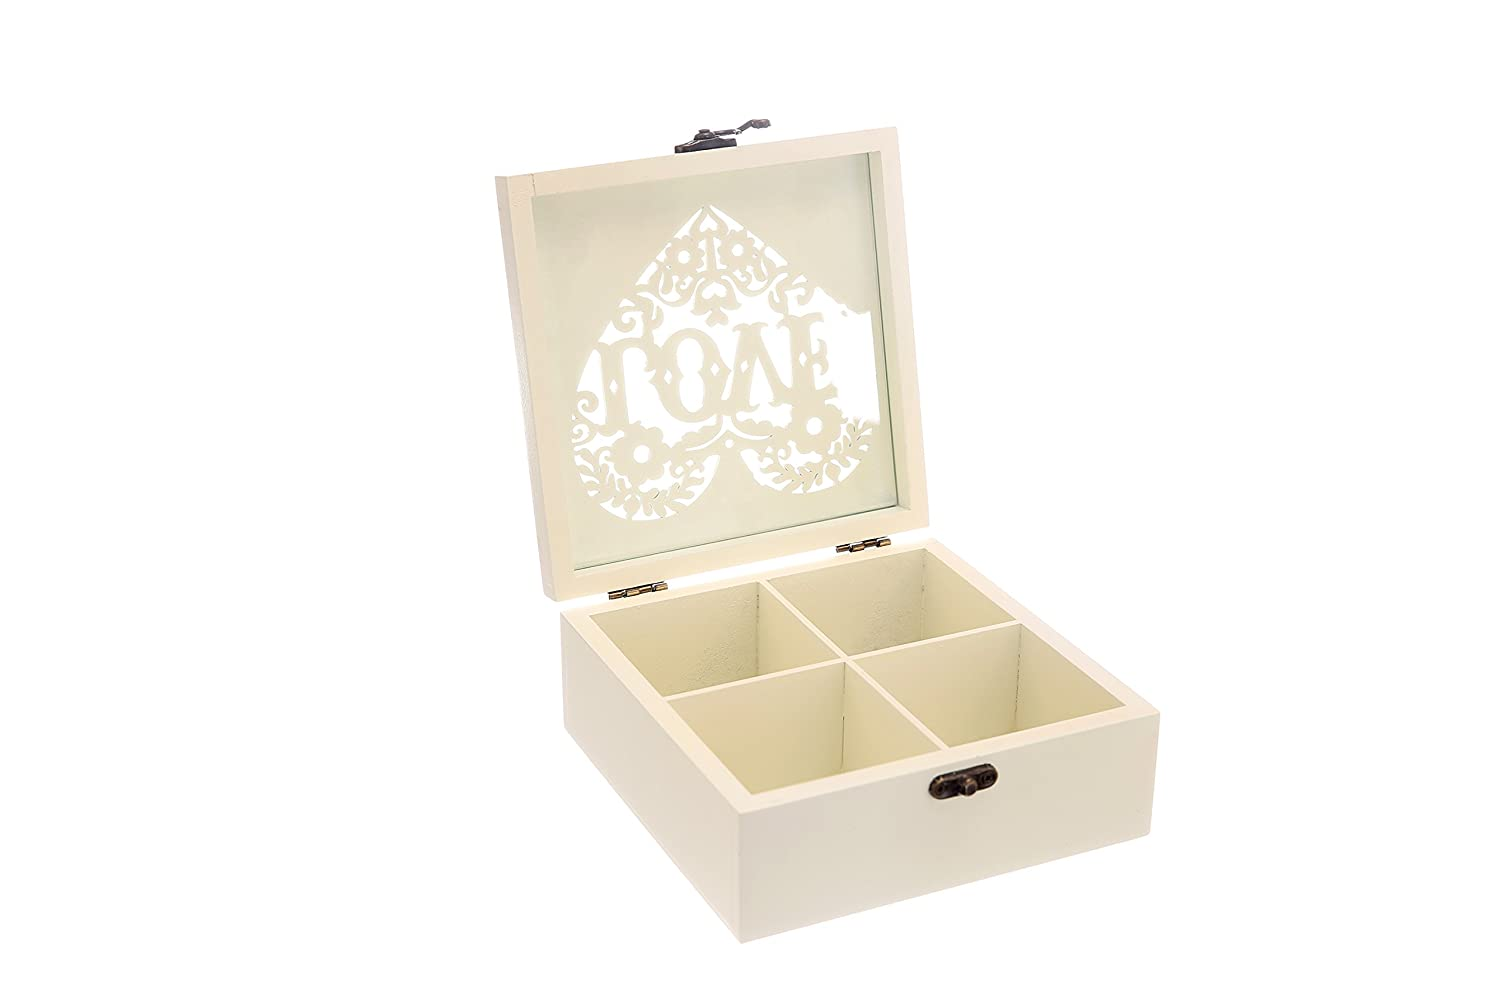 Stylish wooden tea bag container with carved top and lock. Decorative wooden treasure box with engrave art. Mini storage. Chest for jewelry. Memento case. Gift Box. Card collection wooden box.